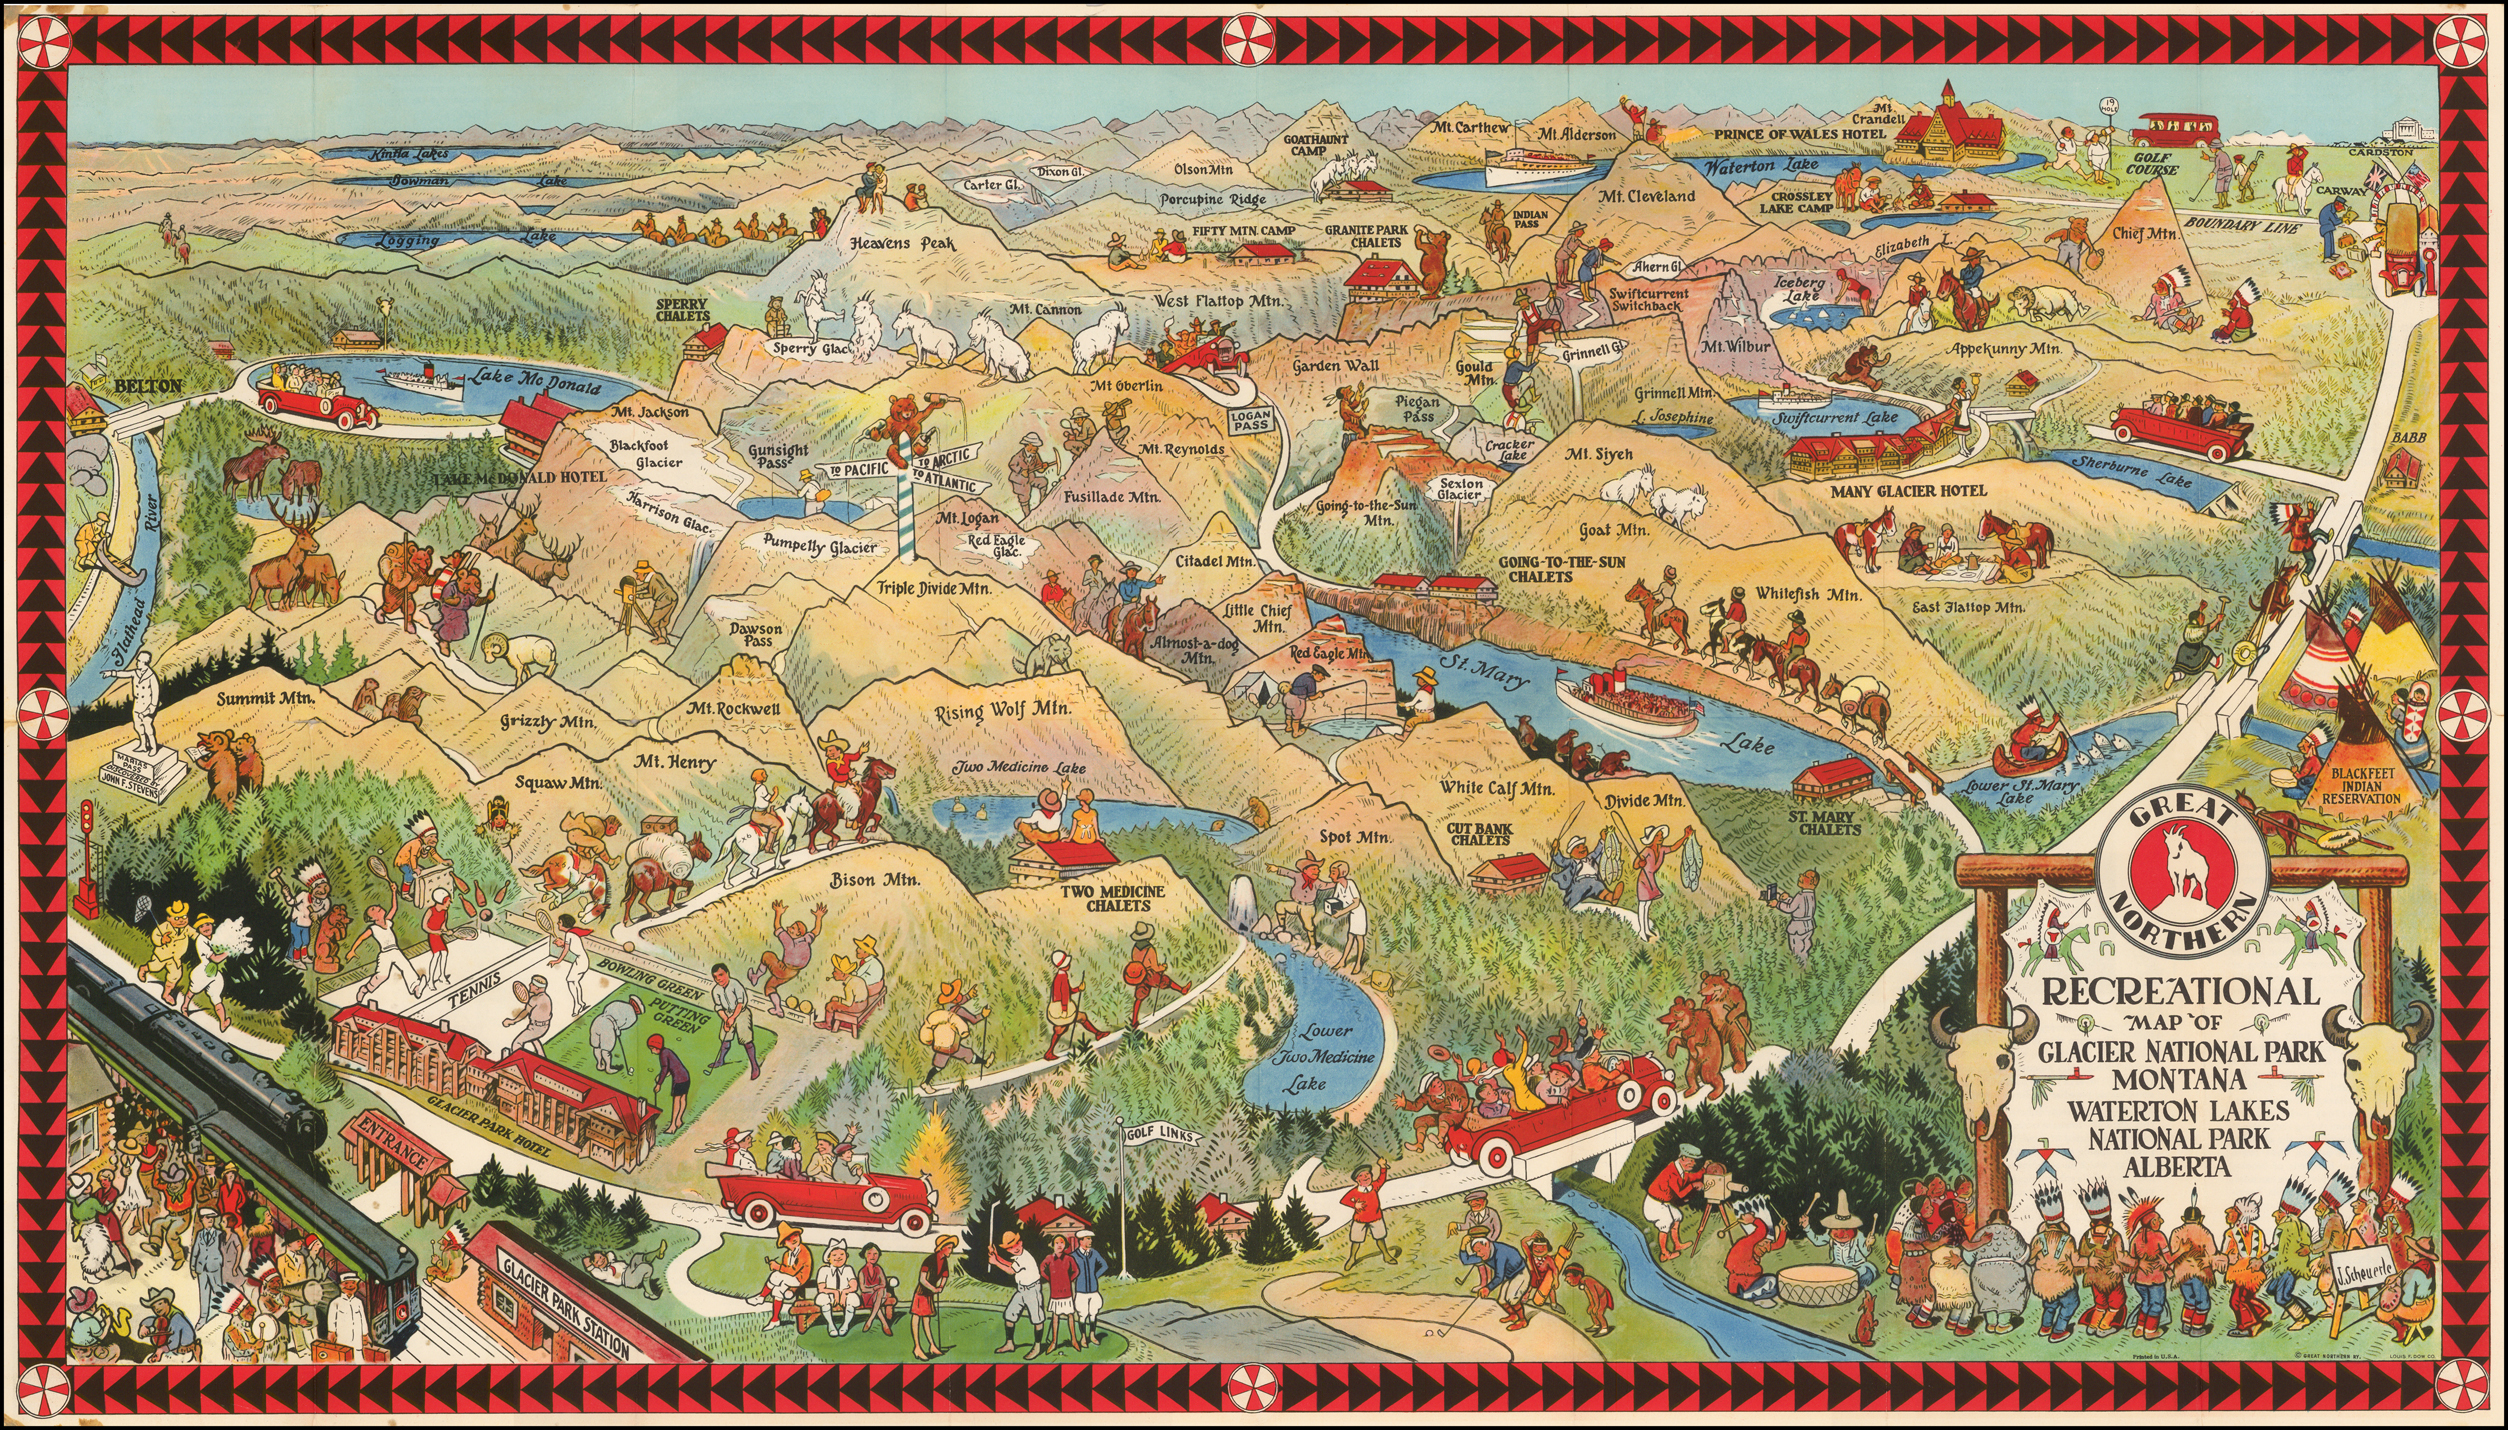 Recreational Map of Glacier National Park Montana Waterton ... on montana big sky resort map, montana billings map, montana on a map, montana hot springs map, montana california map, montana mile marker map, montana city map, montana red lodge map, montana united states map, montana ennis map, montana wildlife map, montana continental divide trail map, montana yellowstone map, montana idaho map, montana camping map, montana zip code map, montana helena map, montana great falls map, montana bozeman map,